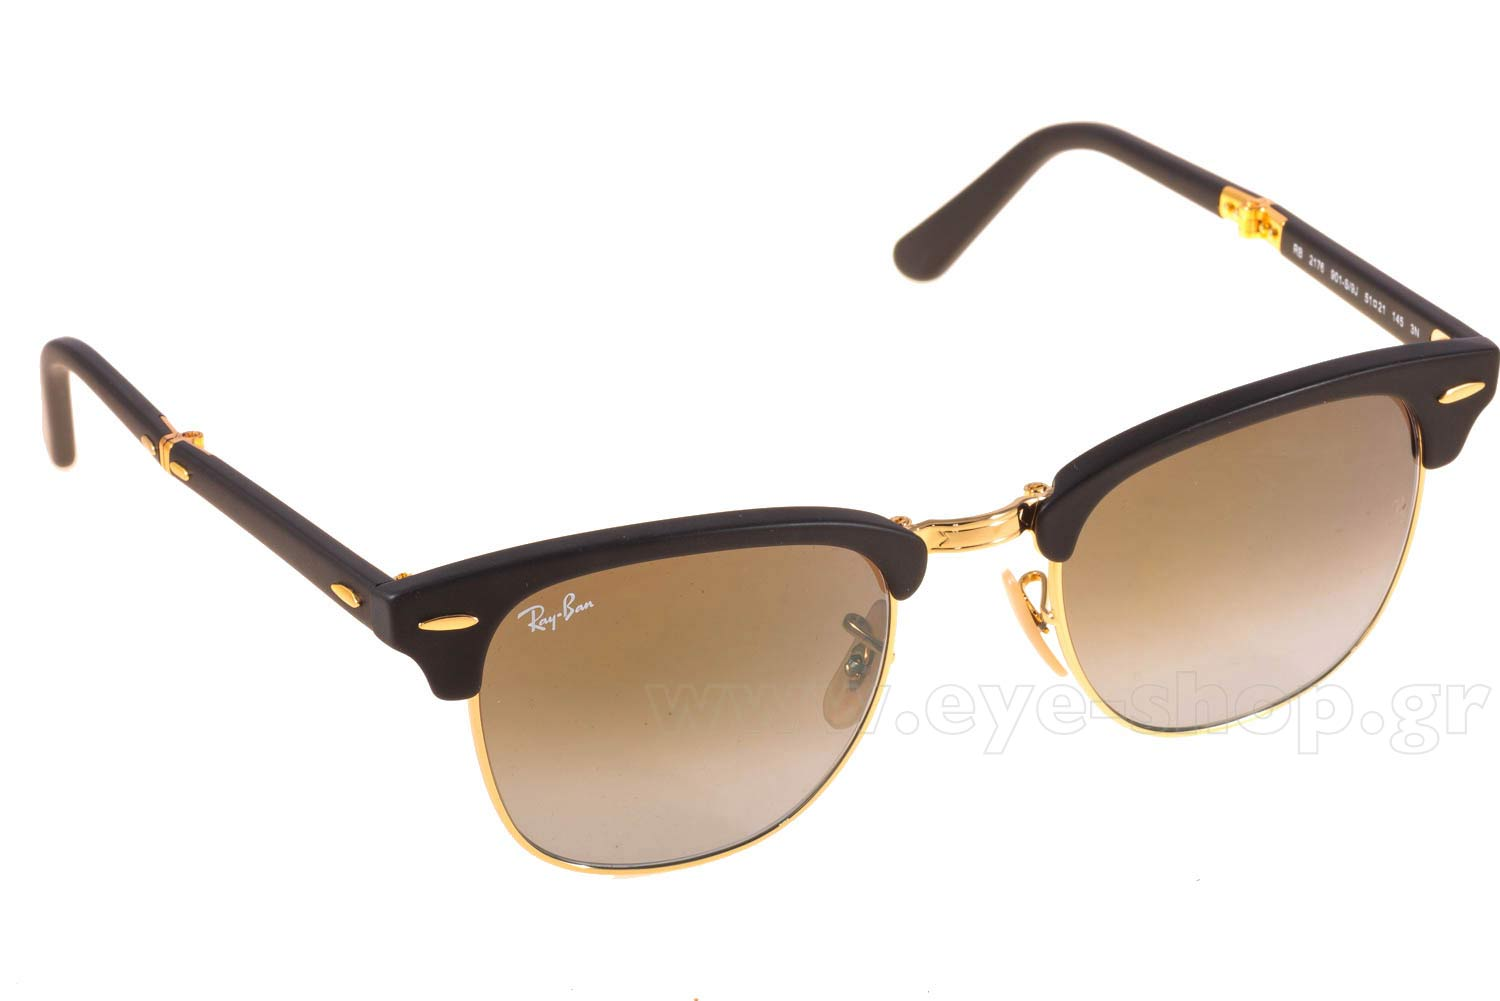 7c3a5f85d0 SUNGLASSES Rayban 2176 Folding Clubmaster 901S9J